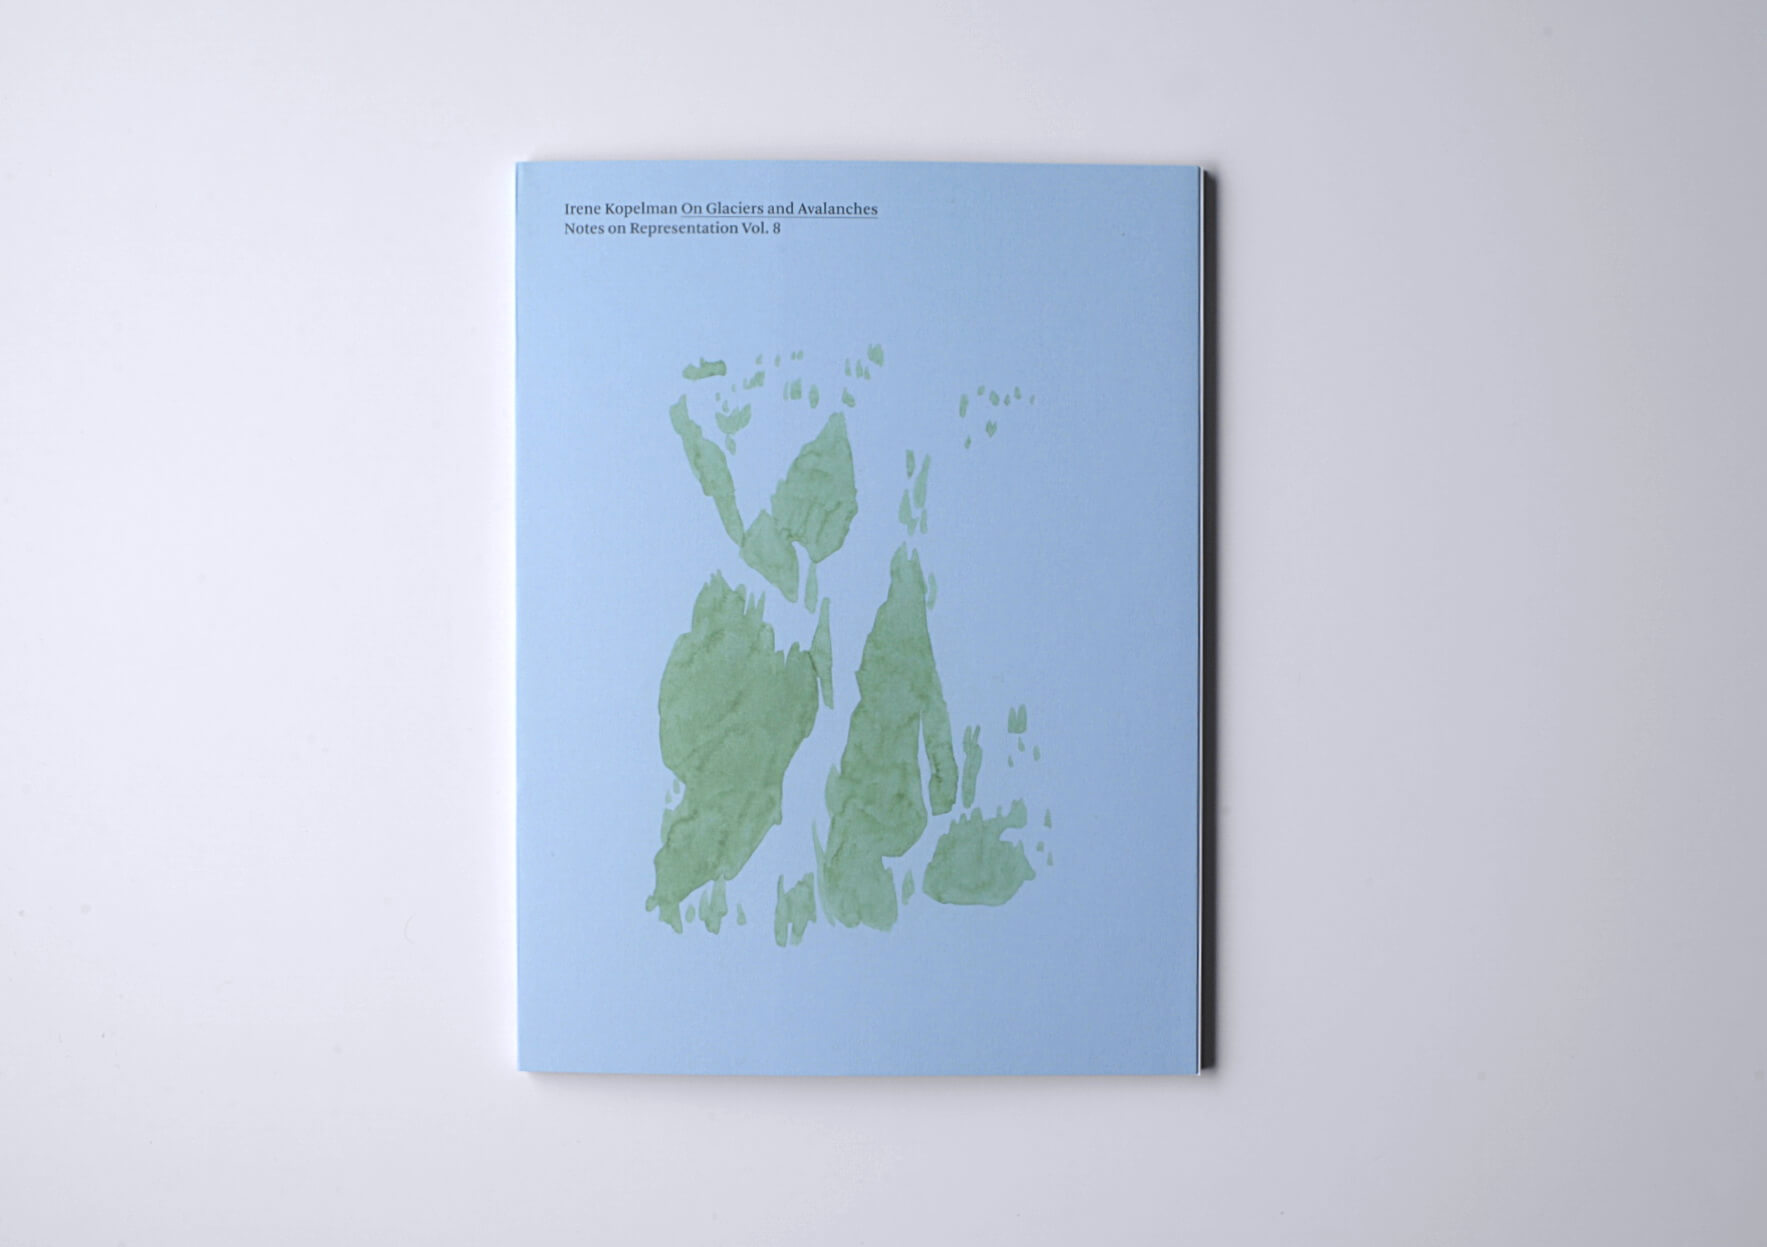 Irene Kopelman On Glaciers and Avalanches. Notes on Representation V.8, 2017 28 x 21 cm, 68 p. Texts in English and Spanish. Ed. Roma Publications | Mother | ProjecteSD